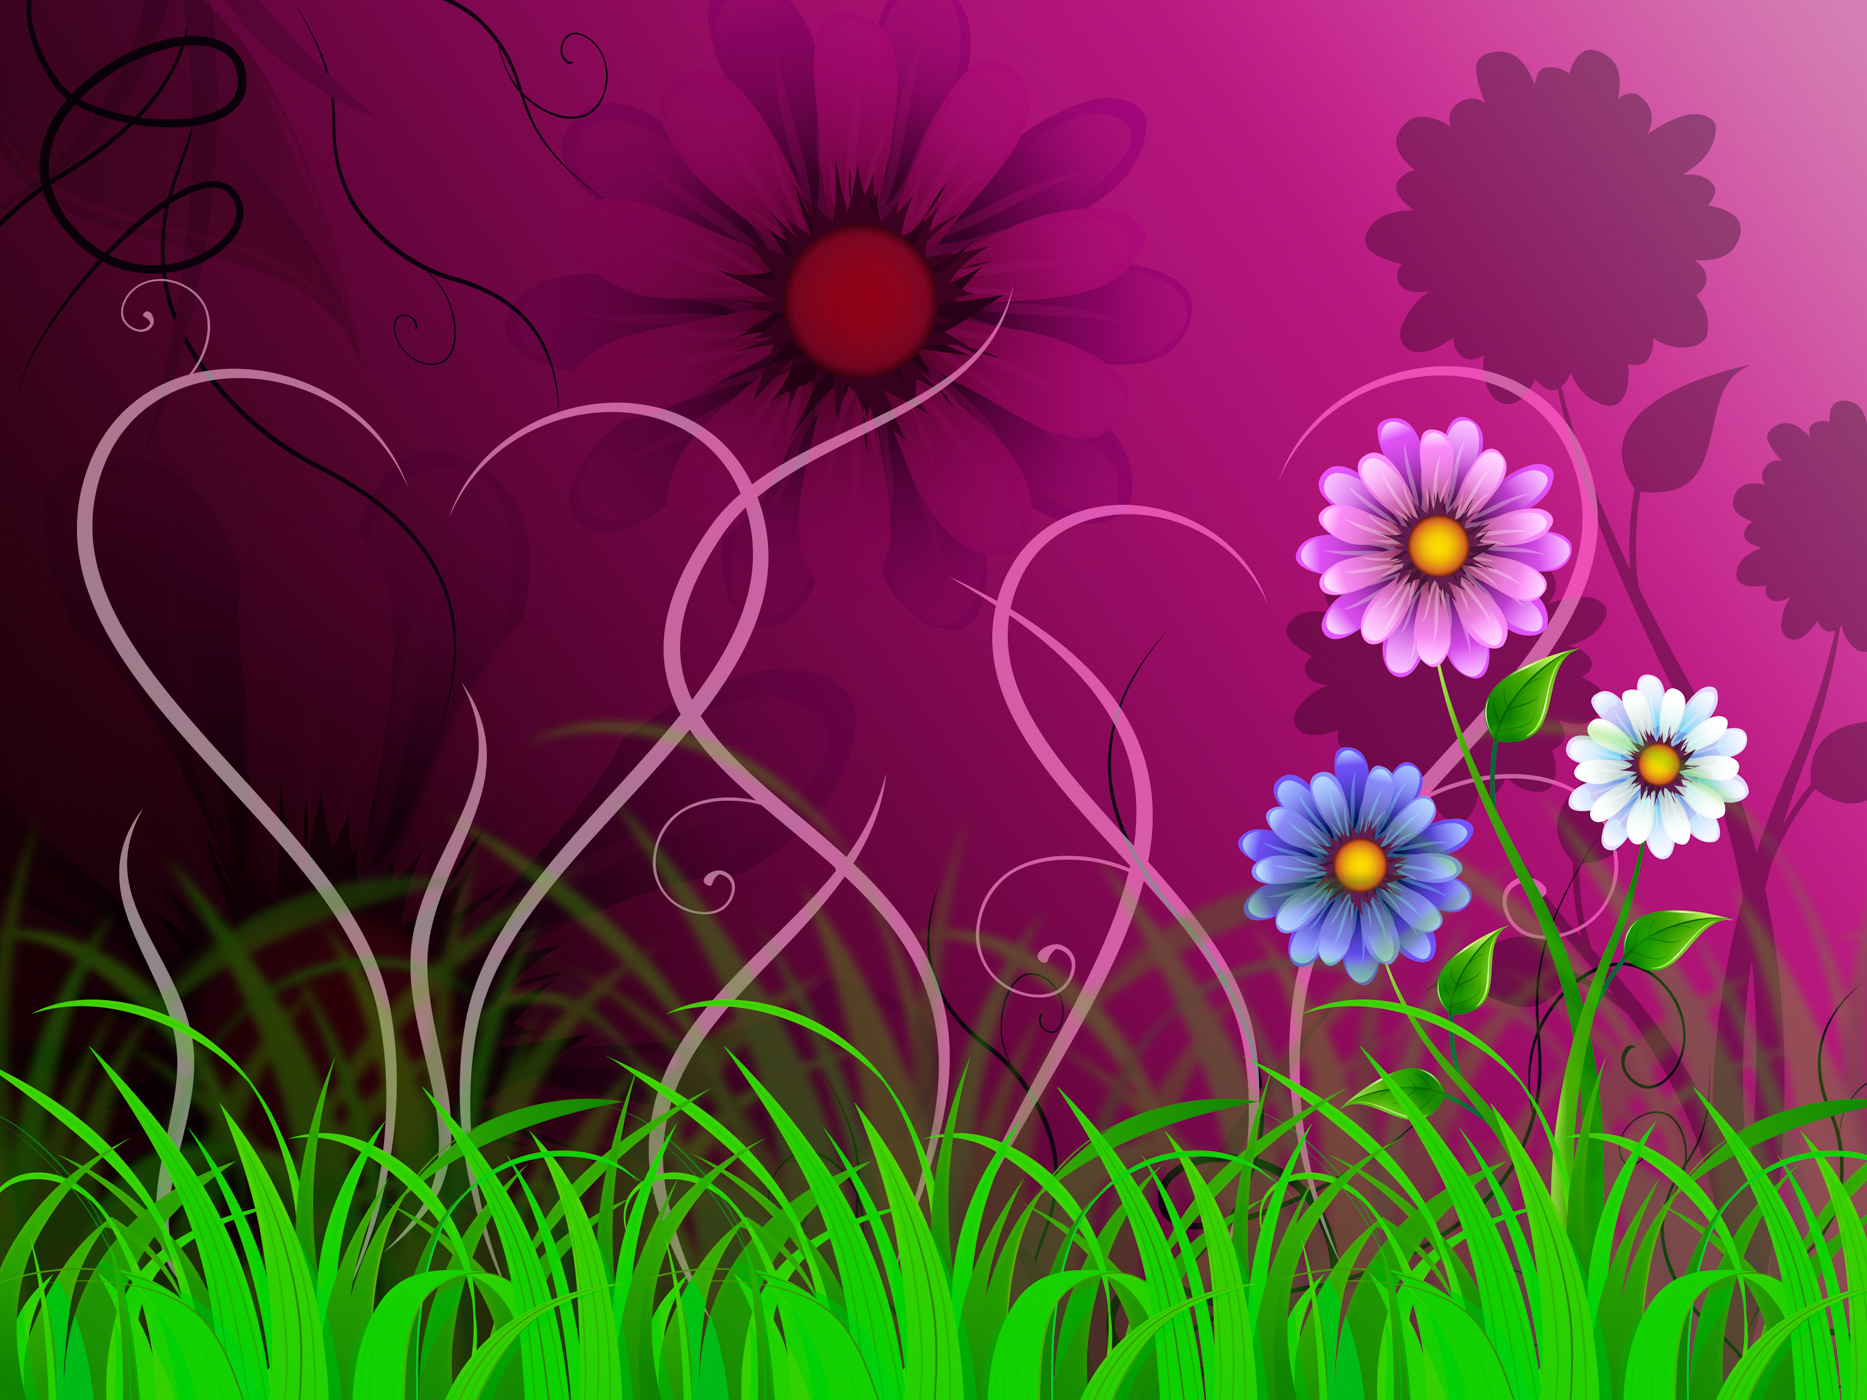 Flowers background shows colorful pretty and natural world photo